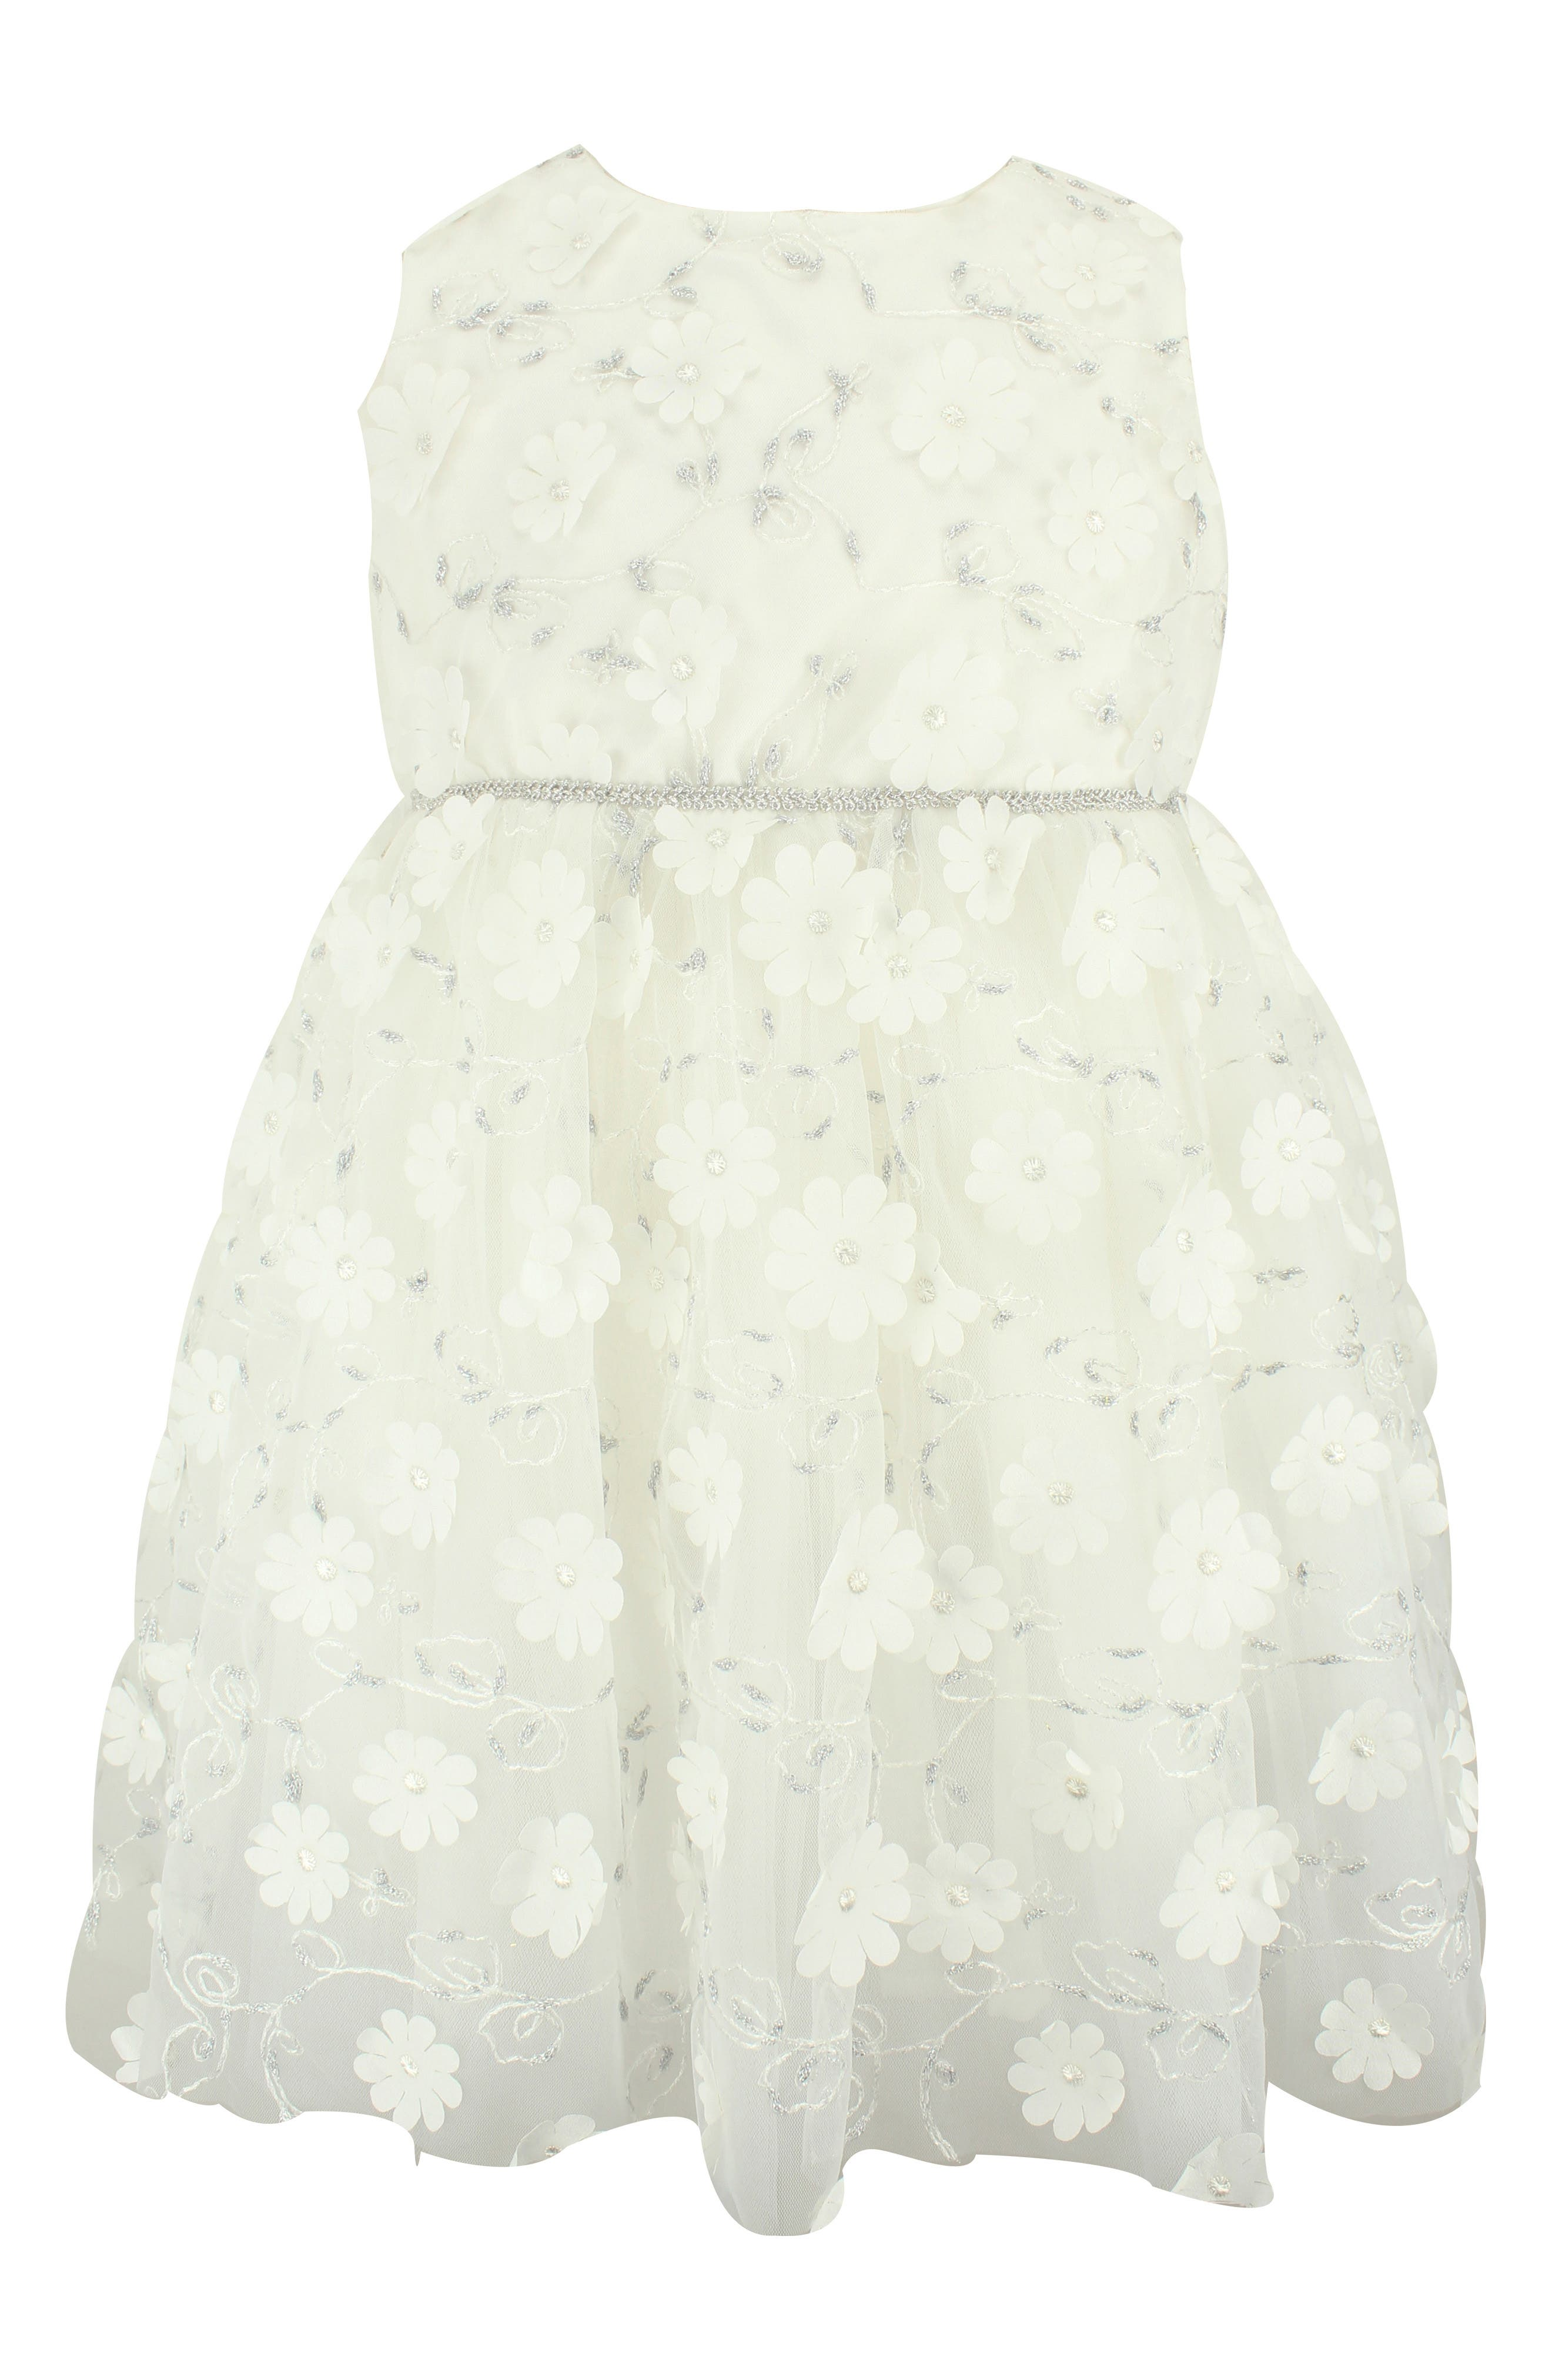 POPATU, Floral & Metallic Embroidery Tulle Dress, Main thumbnail 1, color, WHITE